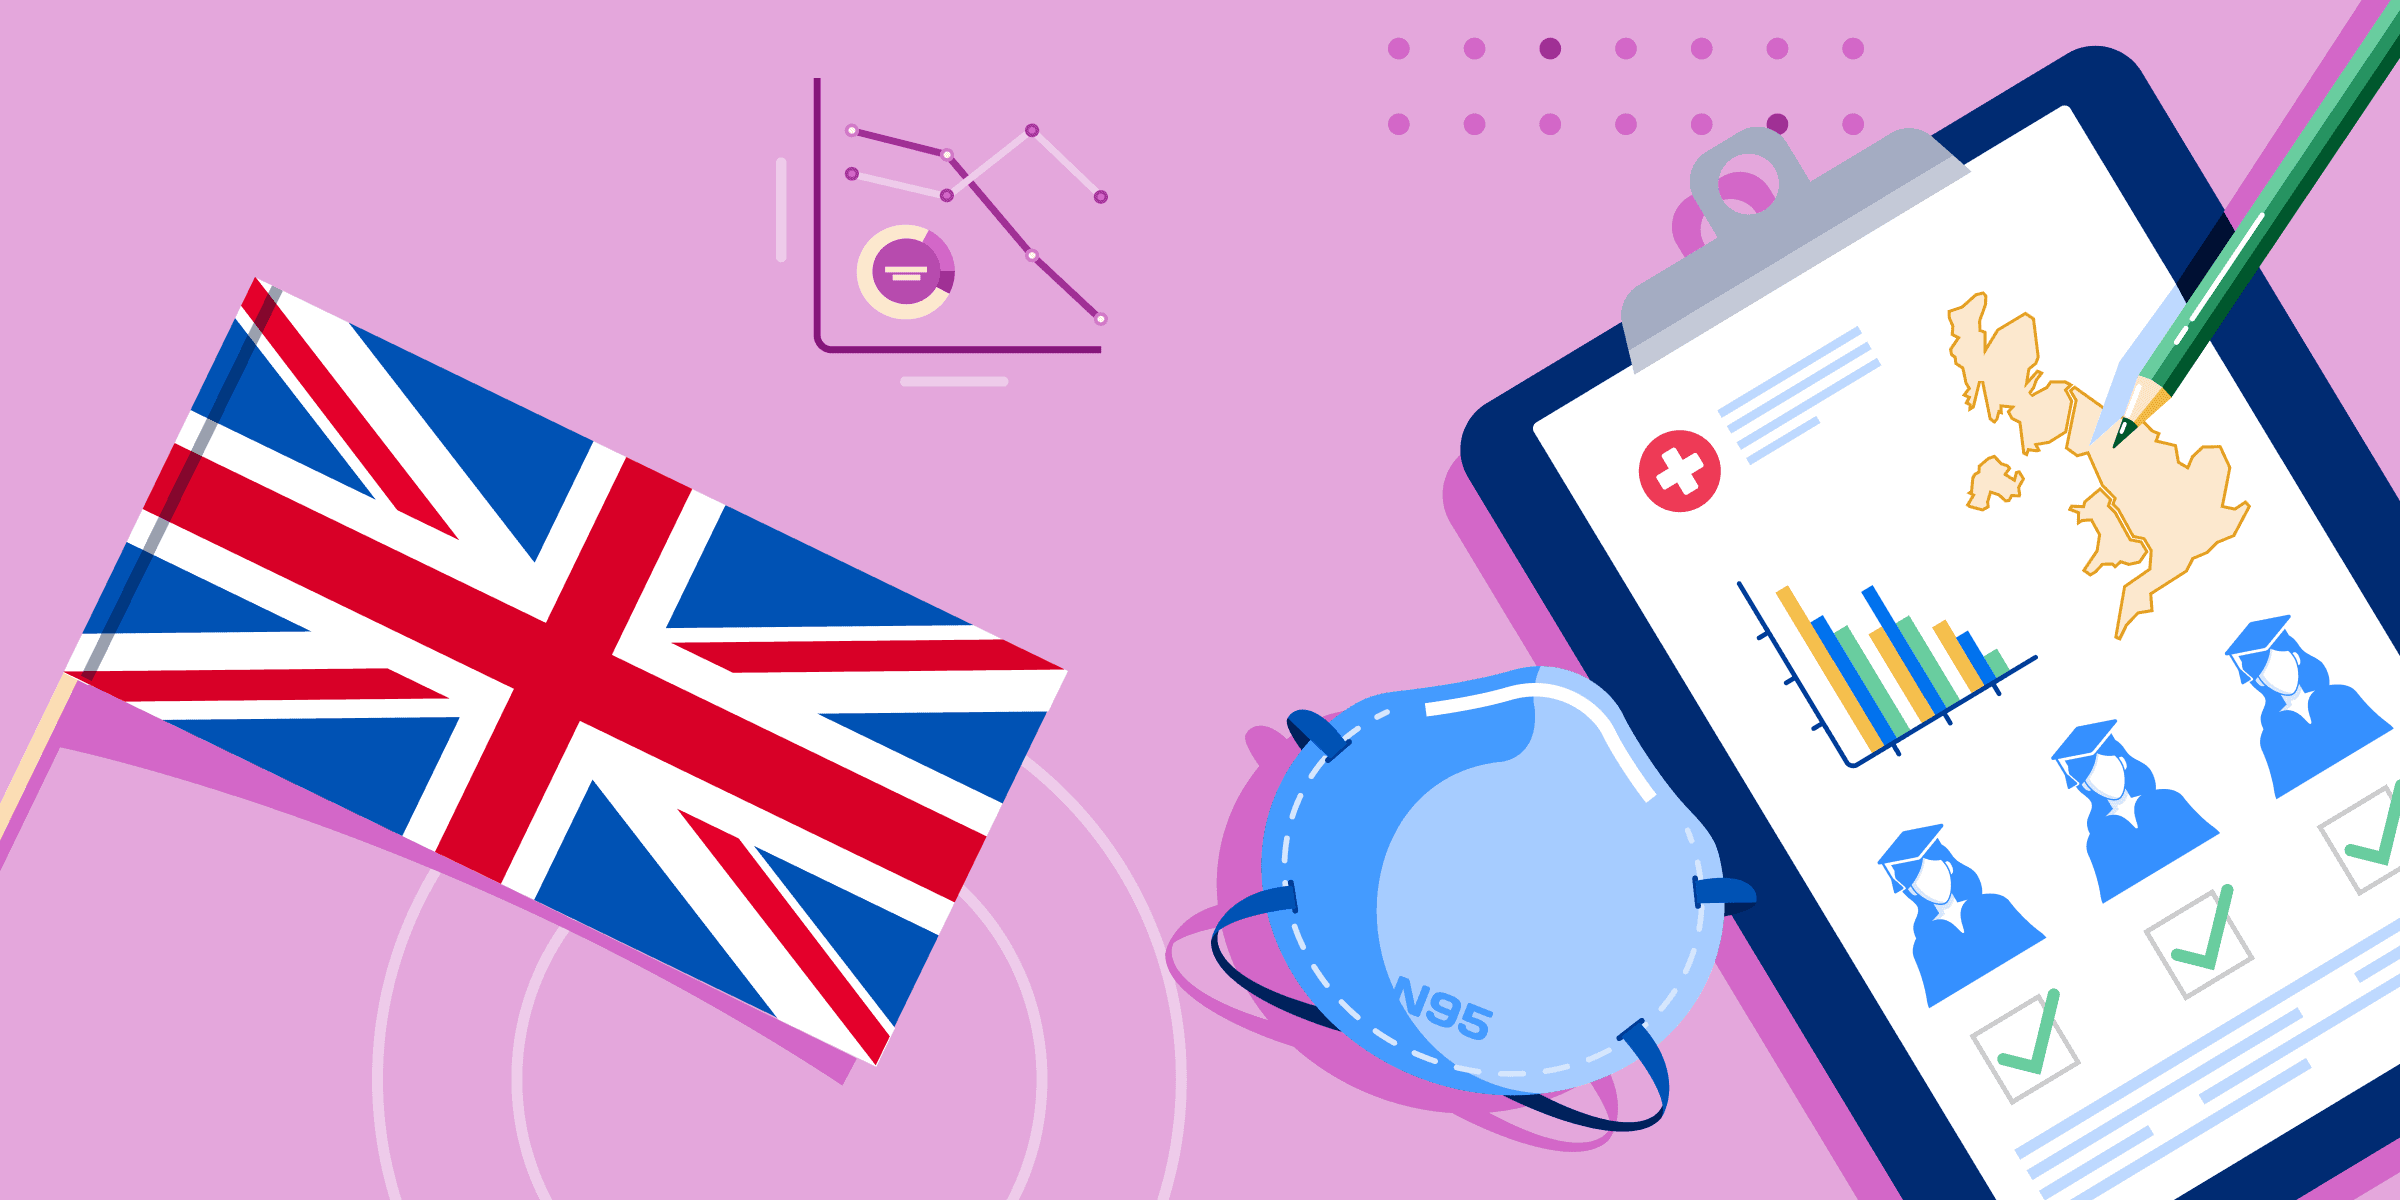 A clipboard showing a map of the UK, the UK flag, and an N95 mask.